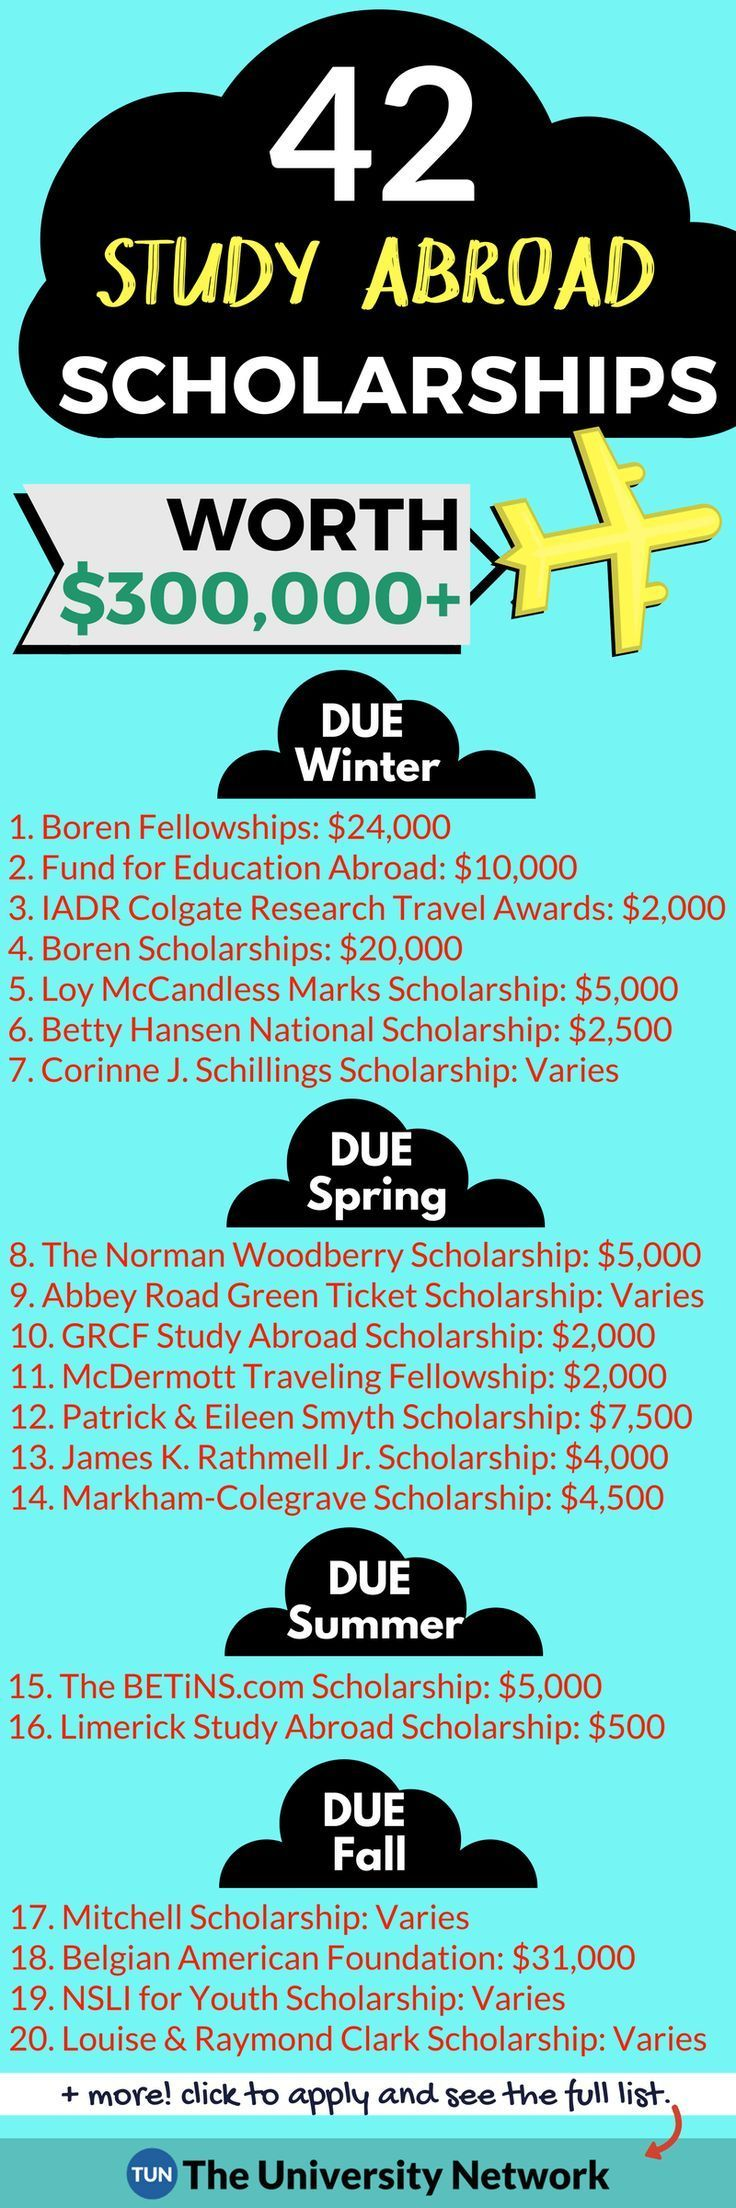 Thinking about or preparing for study abroad? Here is a selection of Study Abroad Scholarships that are listed on TUN.